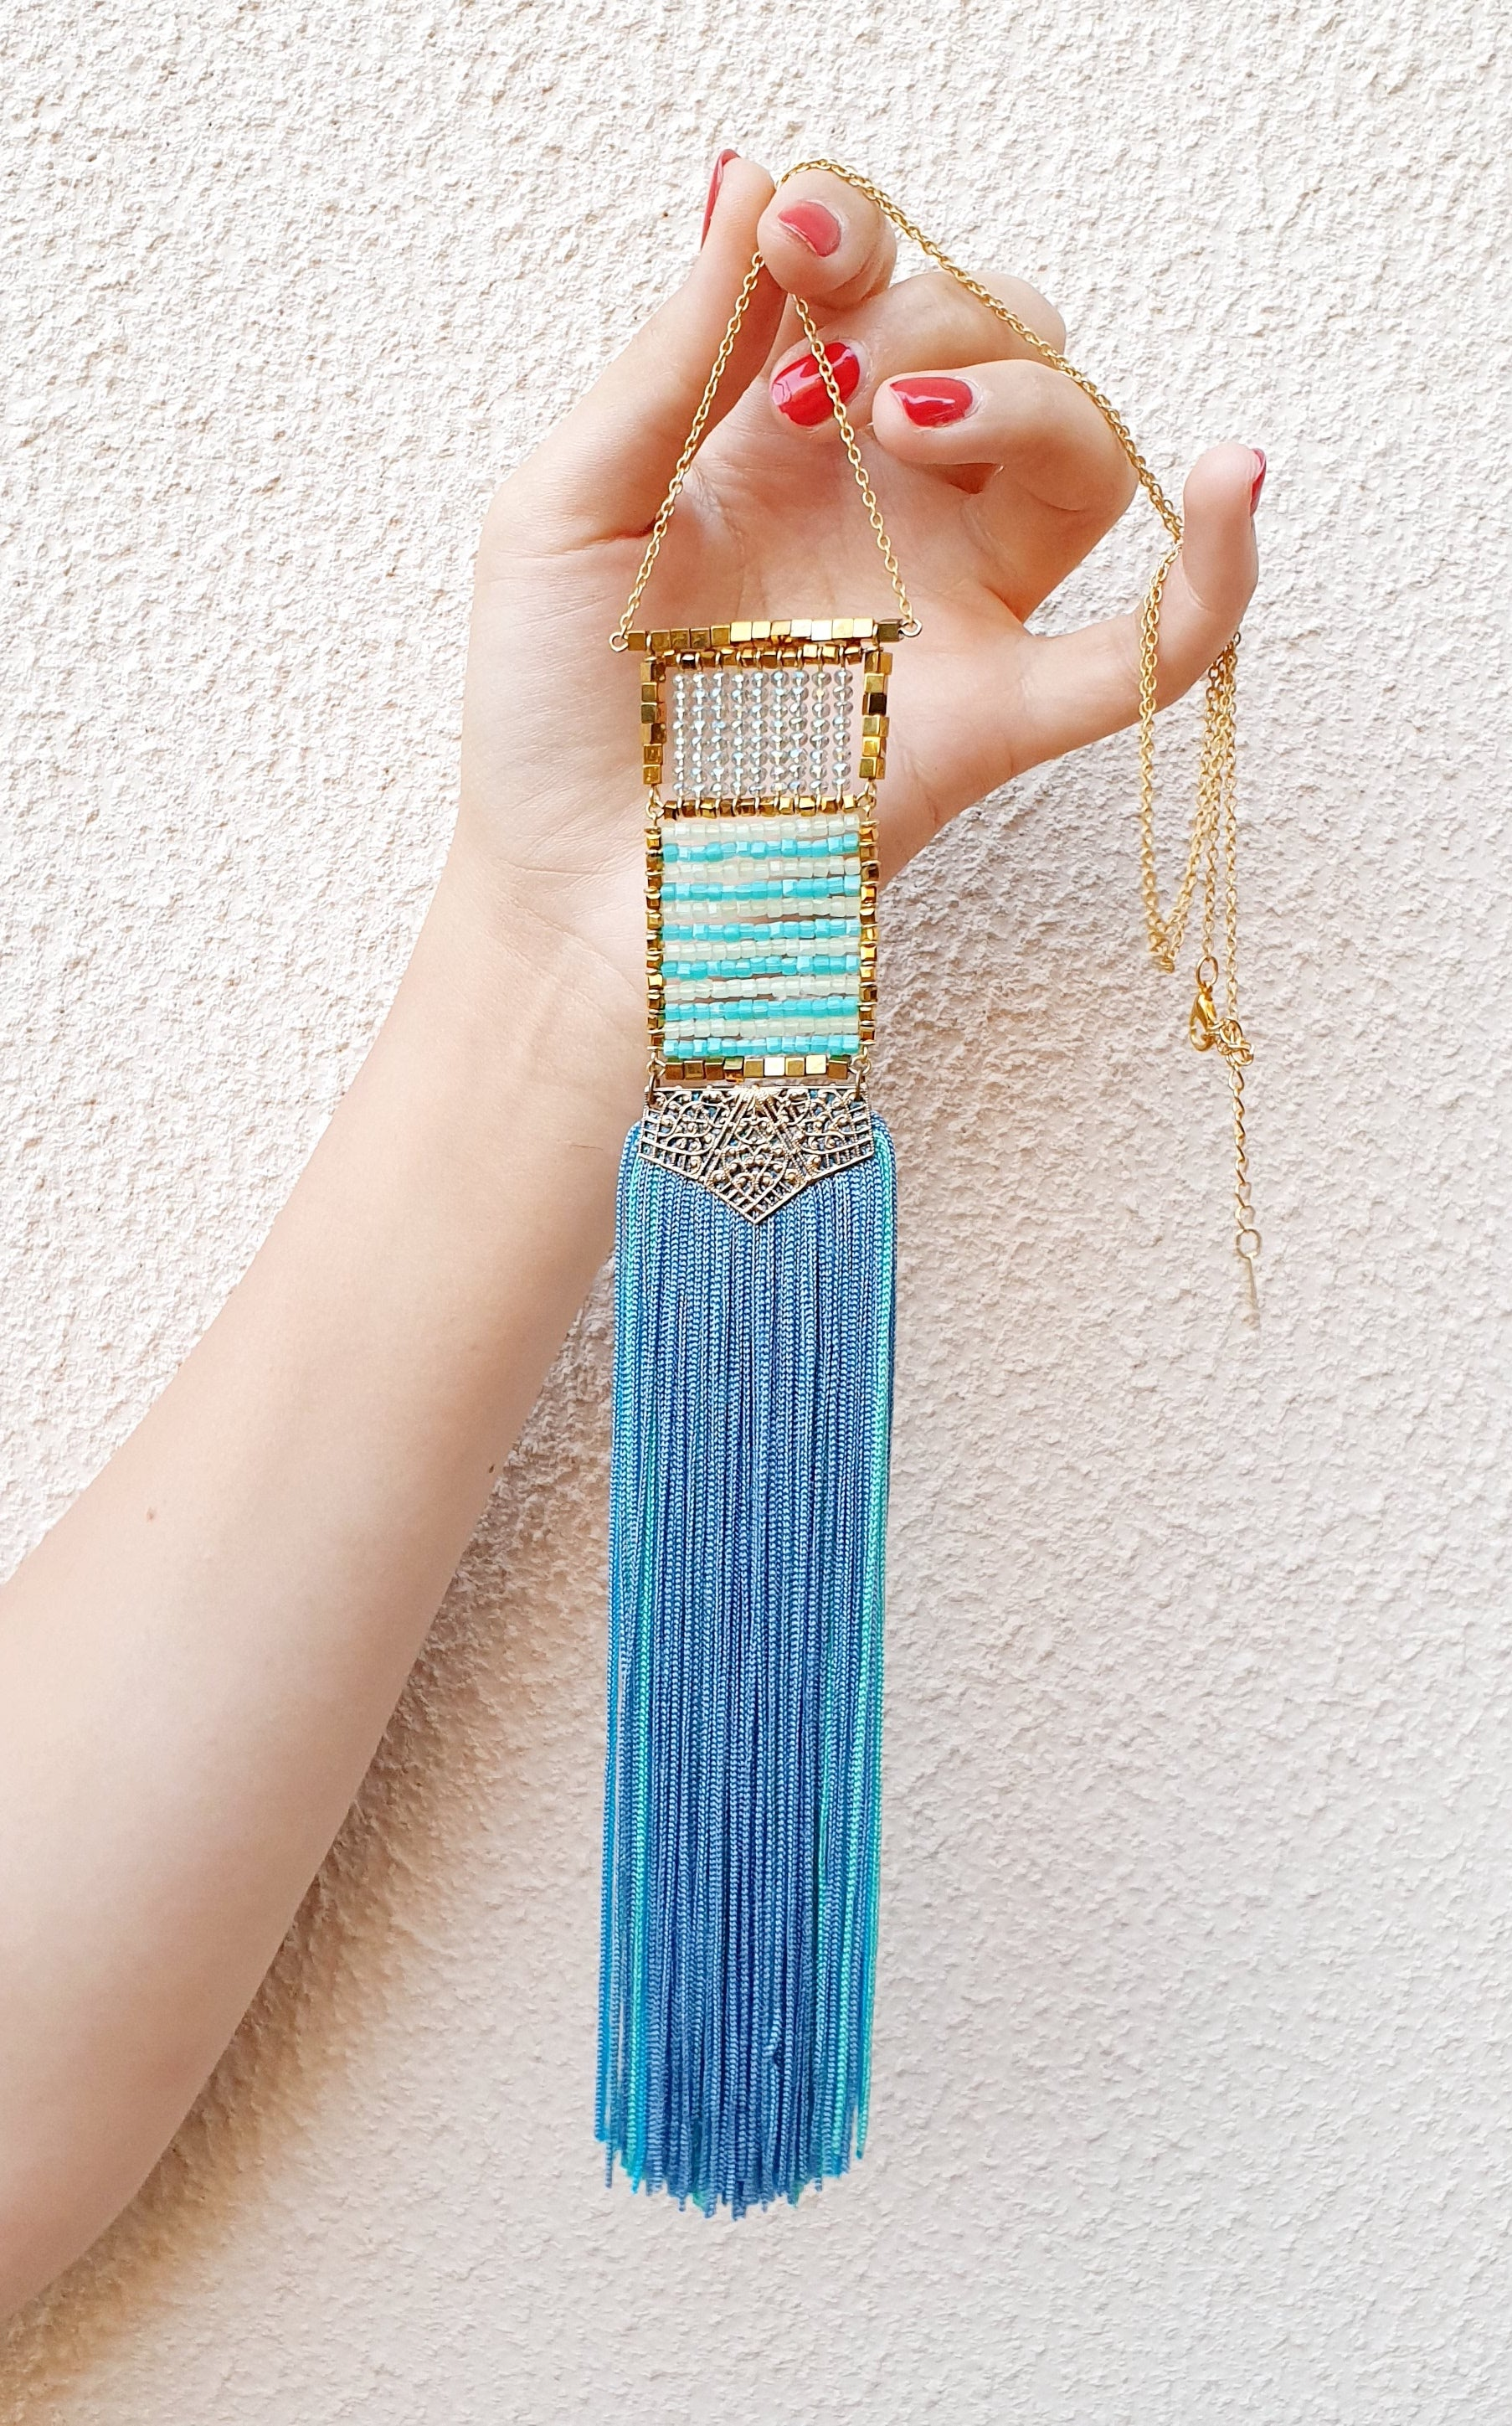 Woman's hand holding an extra long gold chain necklace with gold, clear and blue cubed crystals arranged in a a rectangular shape leading to a thick turquoise blue fringe tassels